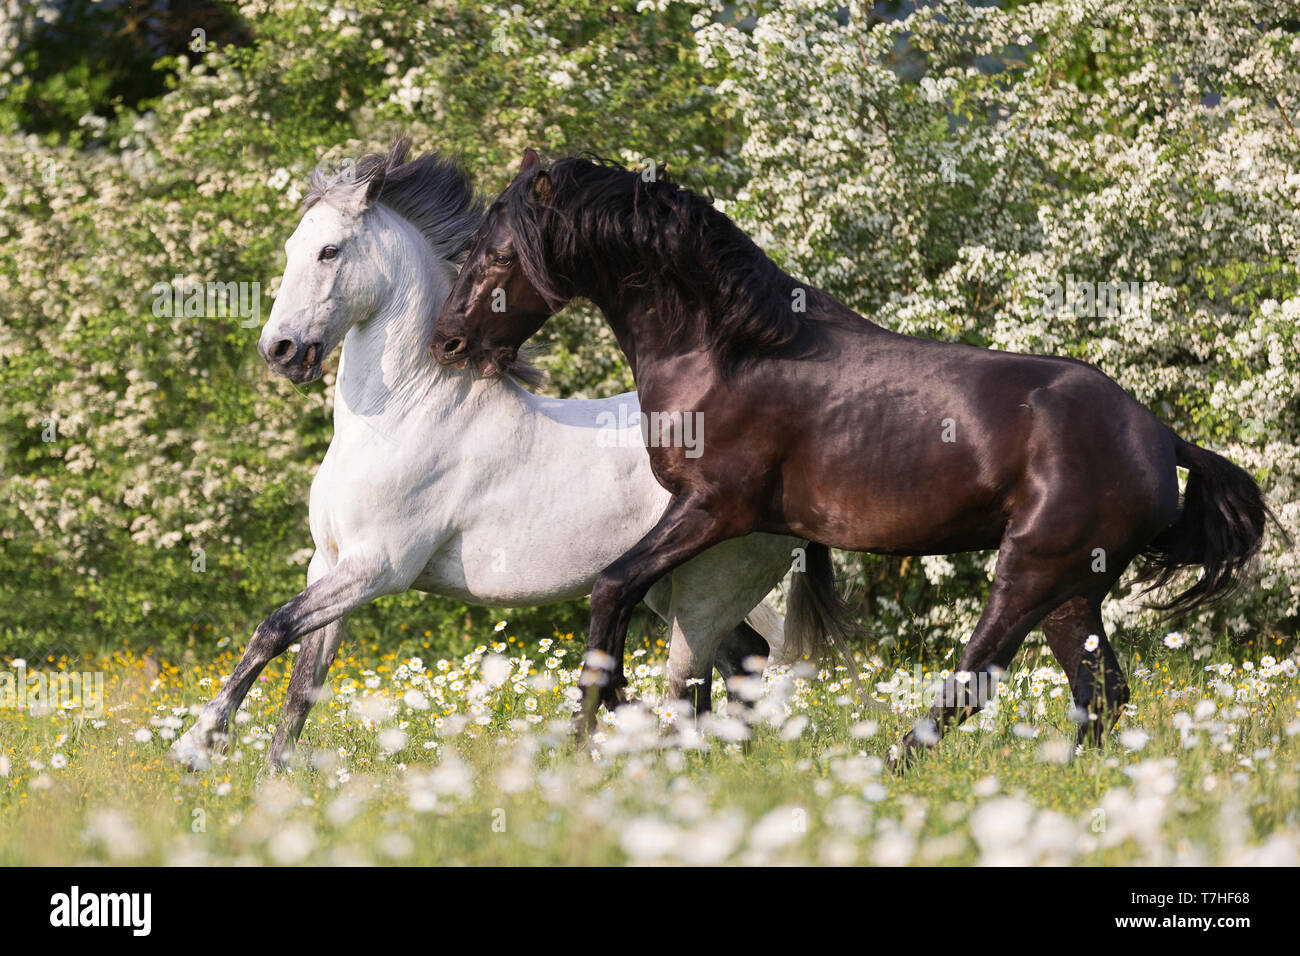 Pure Spanish Horse, Andalusian. Blind gelding and its friend a juvenile black stallion playing on a flowering meadow. Switzerland, - Stock Image